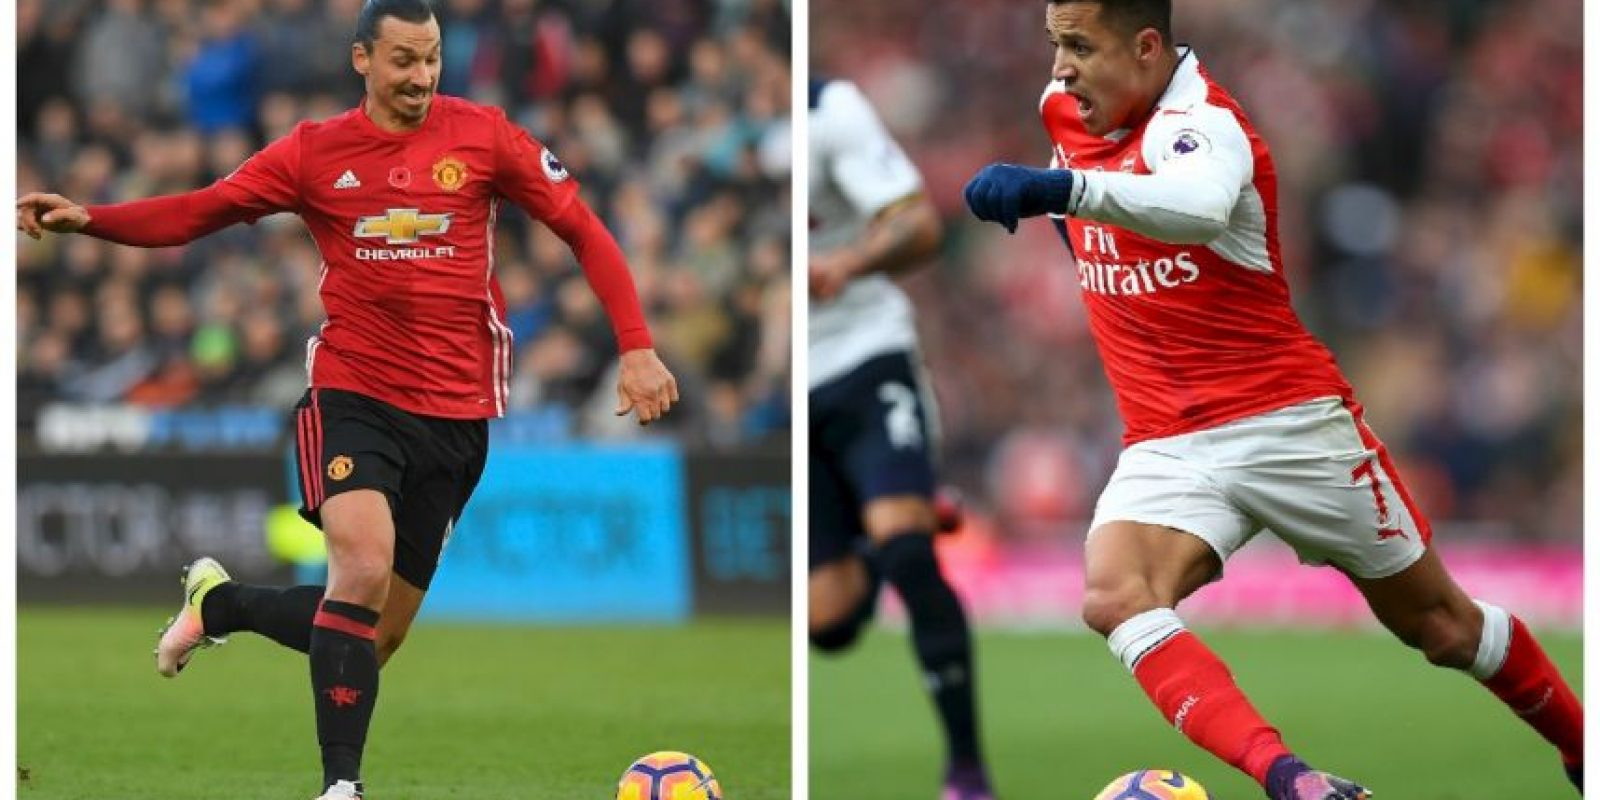 Manchester United-Arsenal Foto: Getty Images